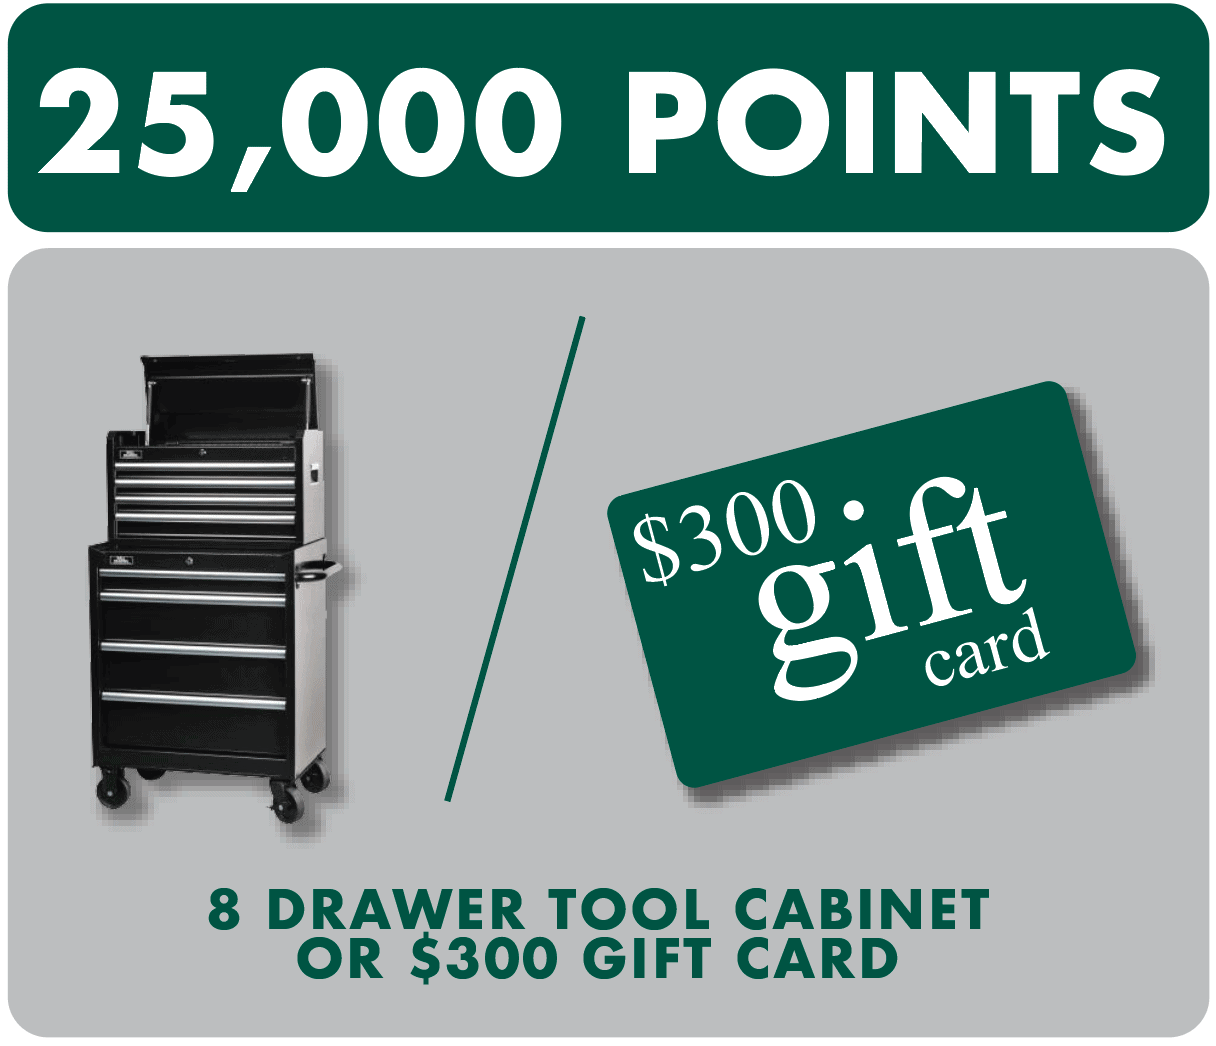 $300 gift card or tool cabinet prize